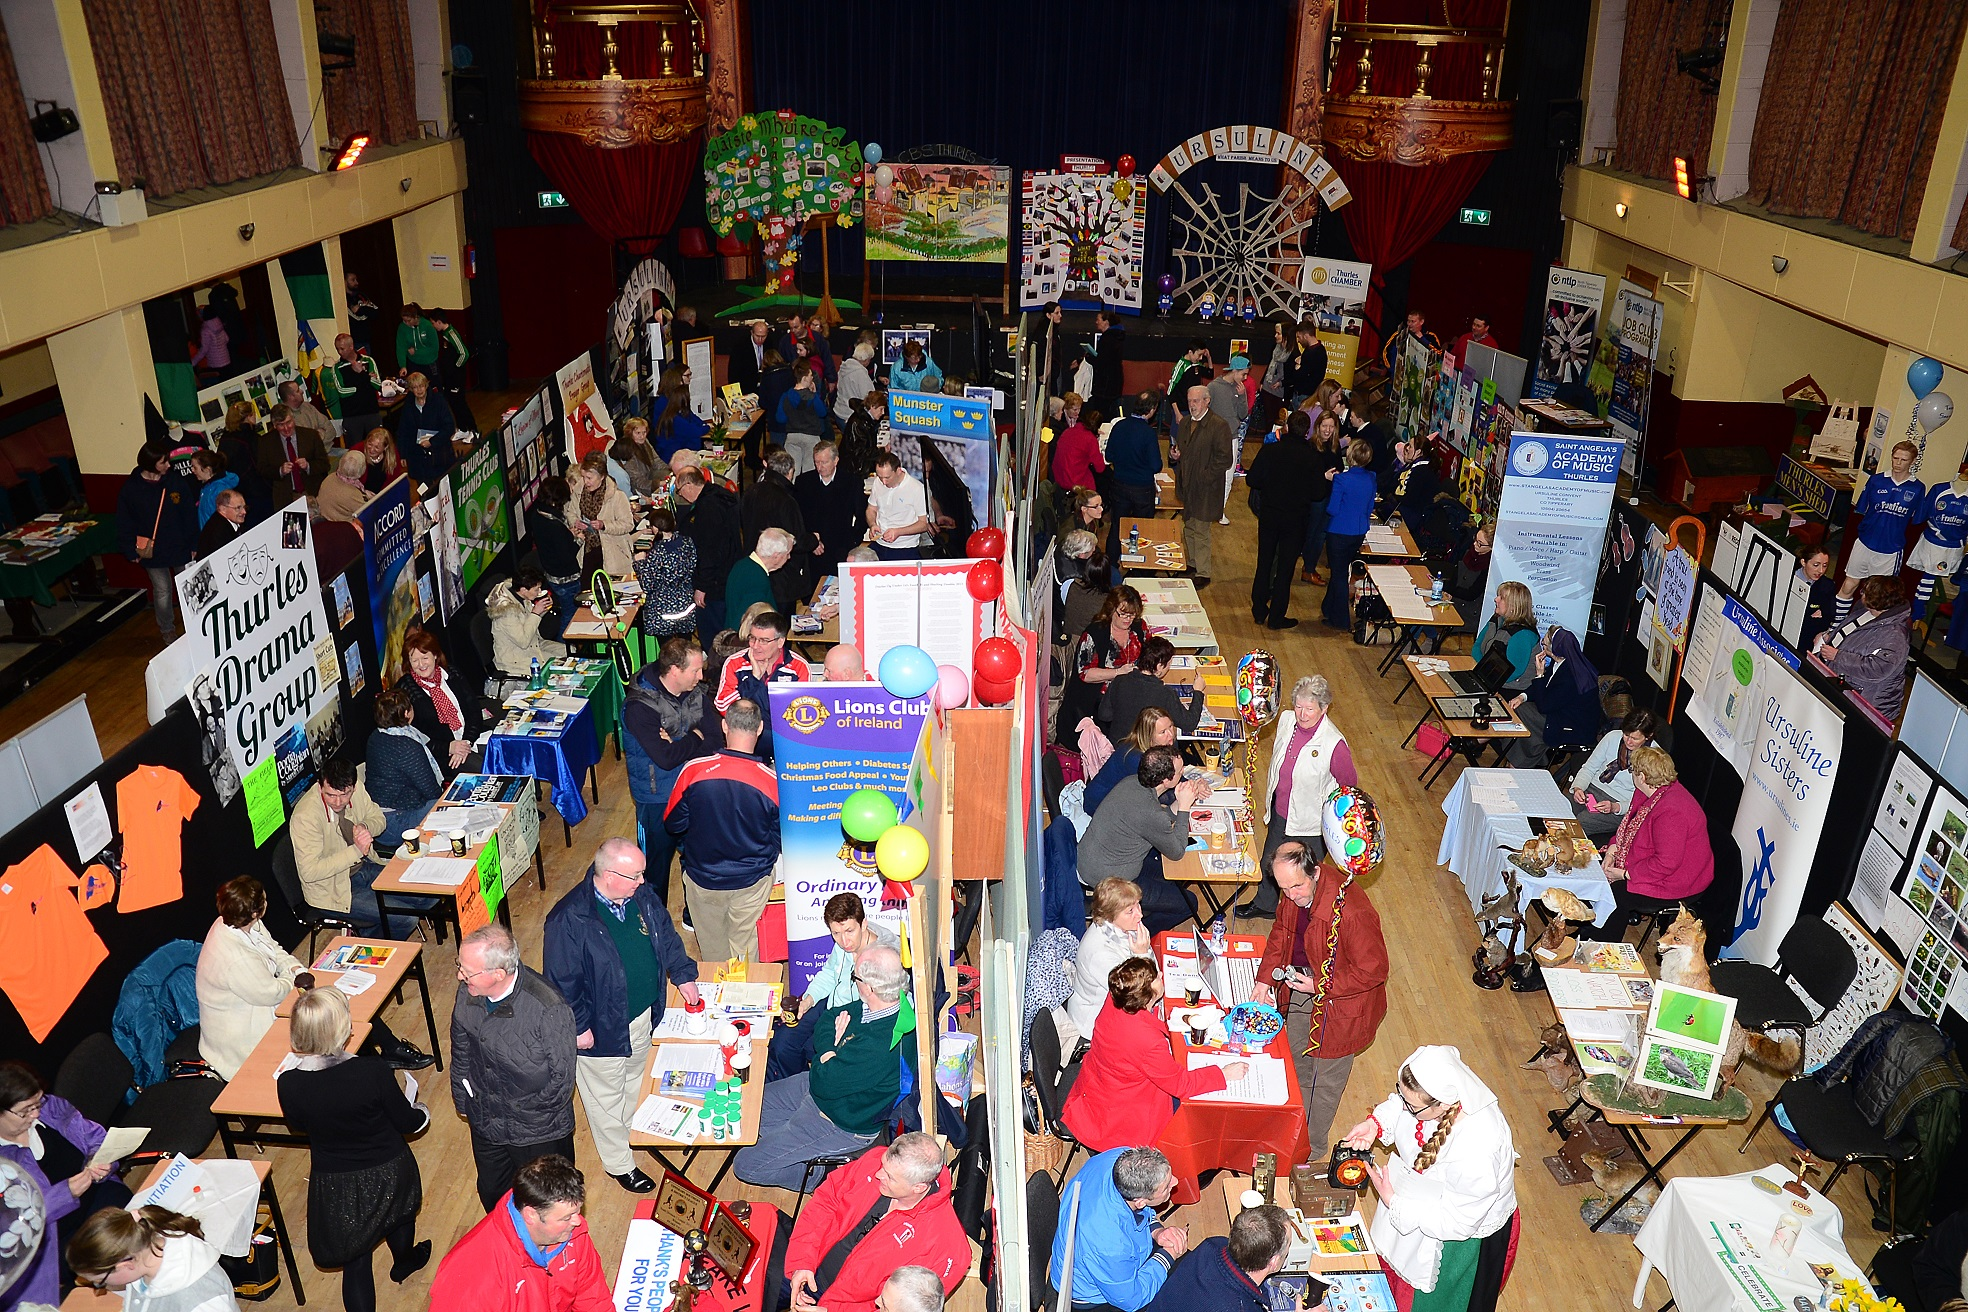 Exhibition of Clubs, Organisations and Societies